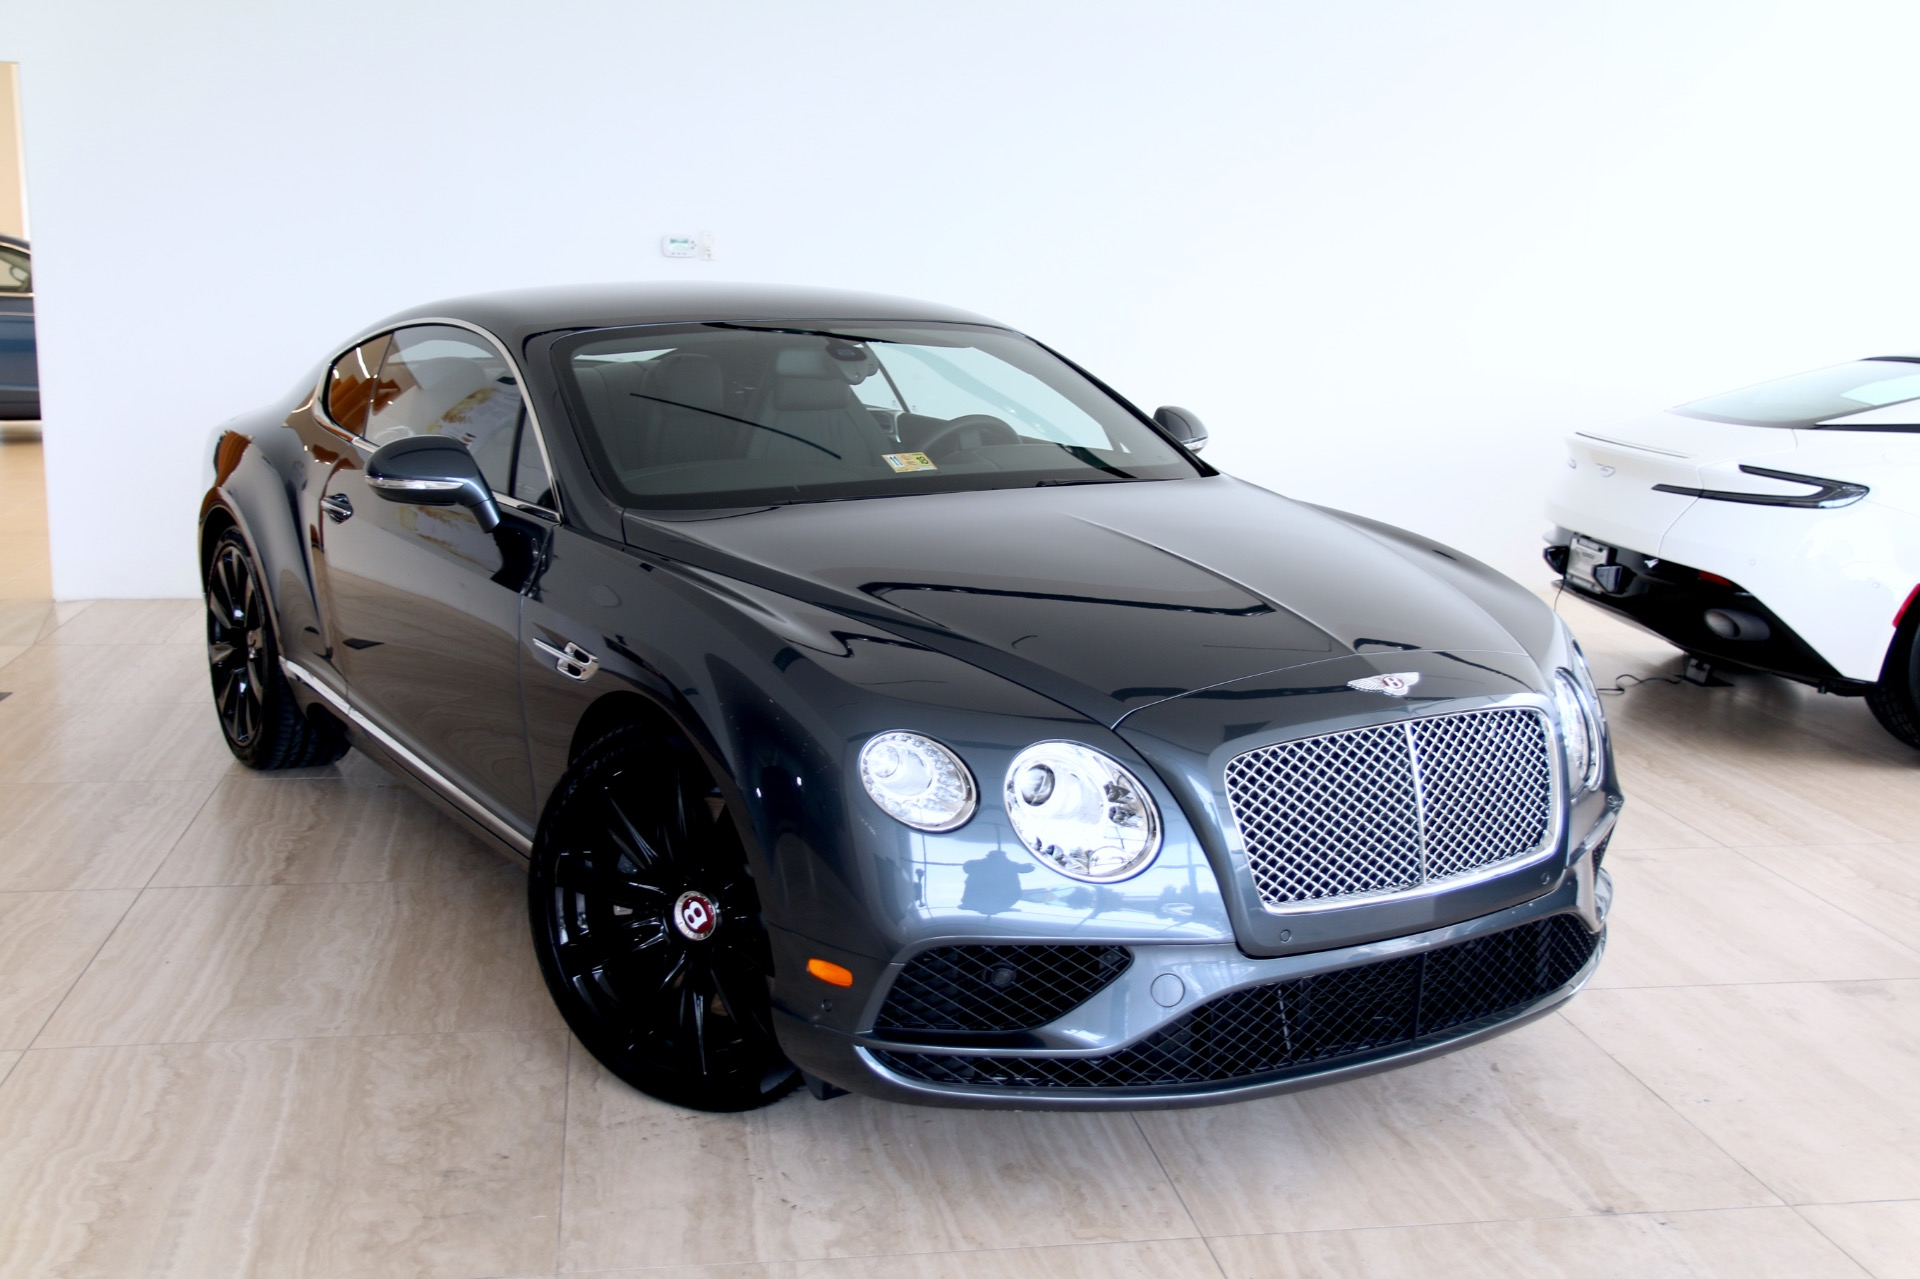 2017 bentley continental gt v8 stock 8n018899c for sale near vienna va va bentley dealer. Black Bedroom Furniture Sets. Home Design Ideas